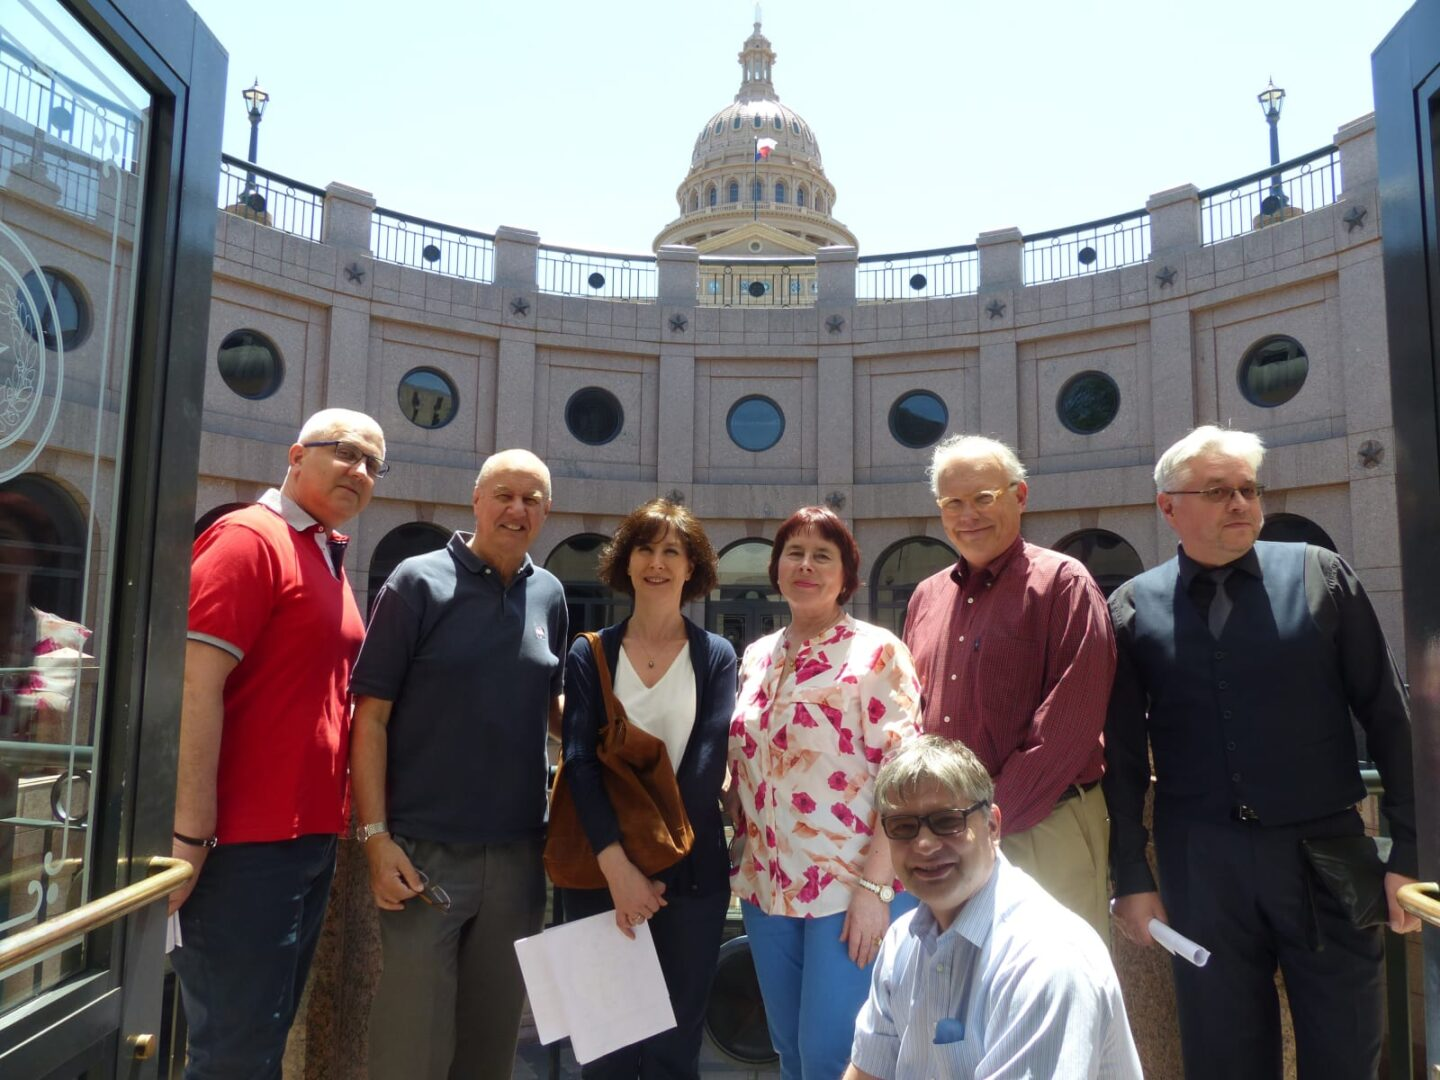 Conference speakers visit the Texas State Capitol on a guided tour with St. Edward's University Professor Dr. Charles Porter